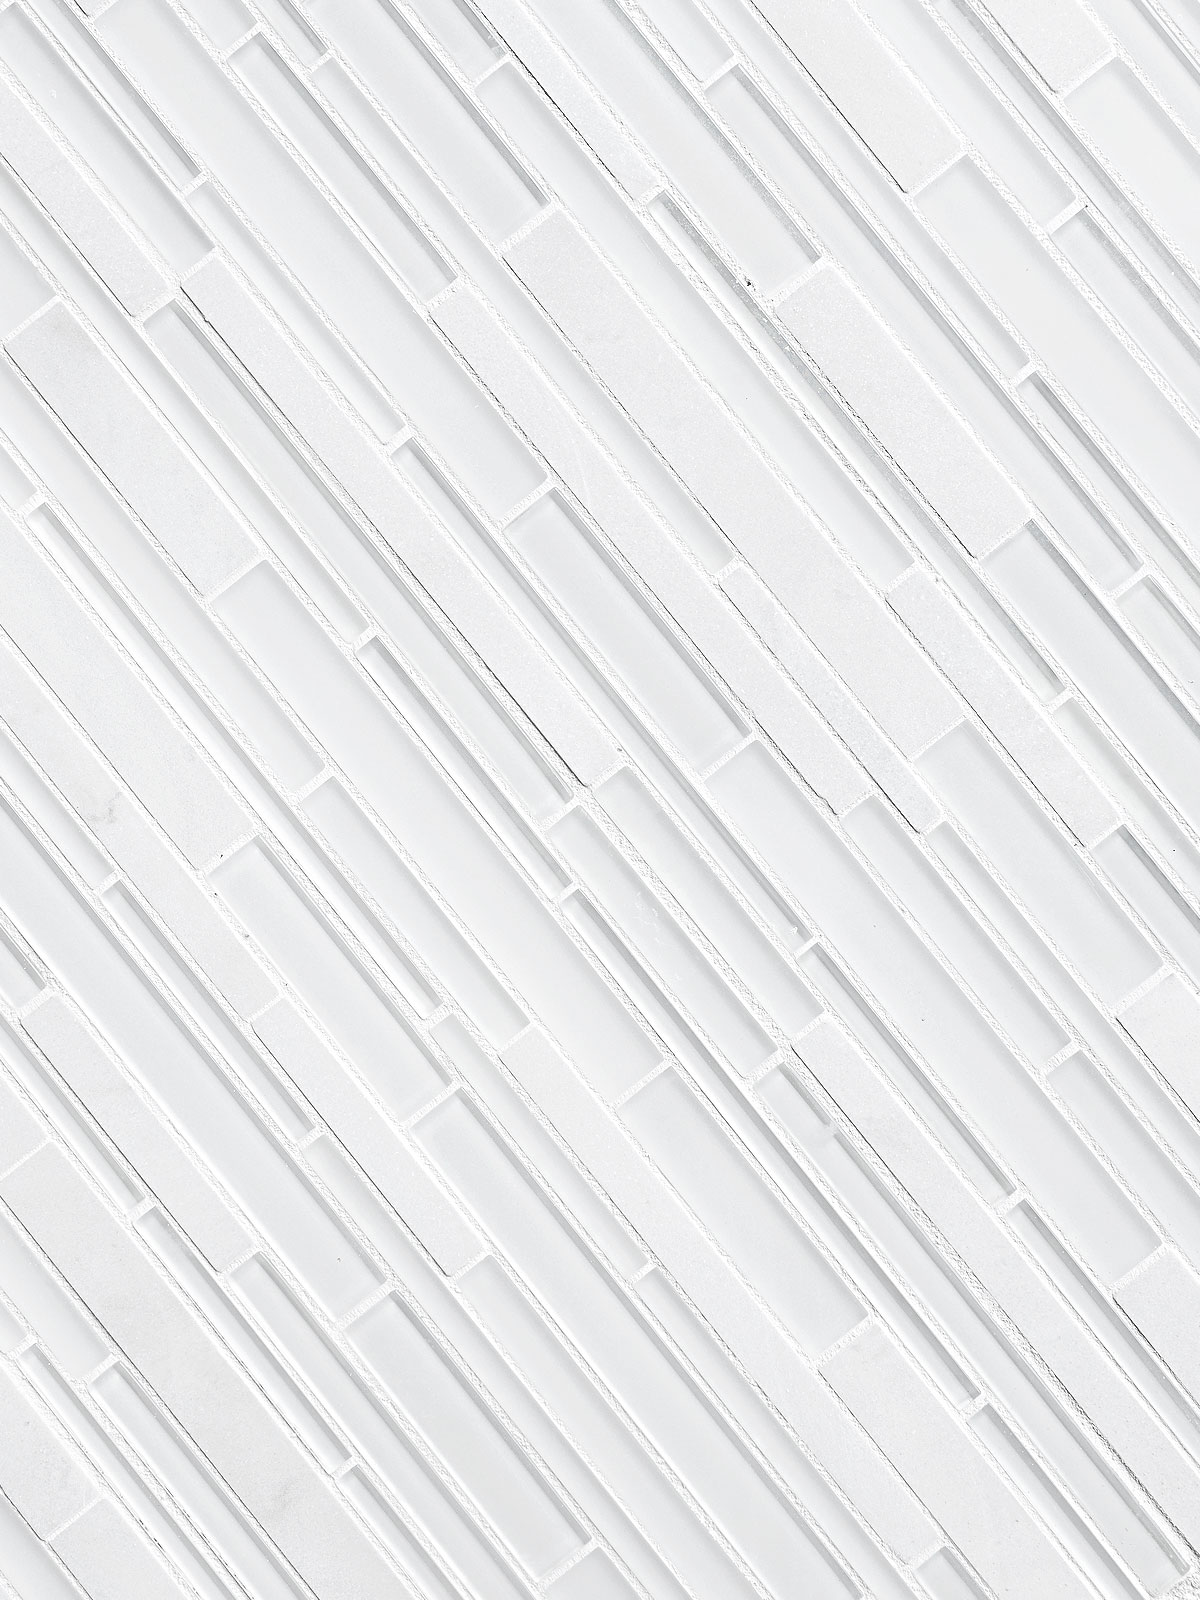 White Glass Marble Linear Backsplash Tile BA1155